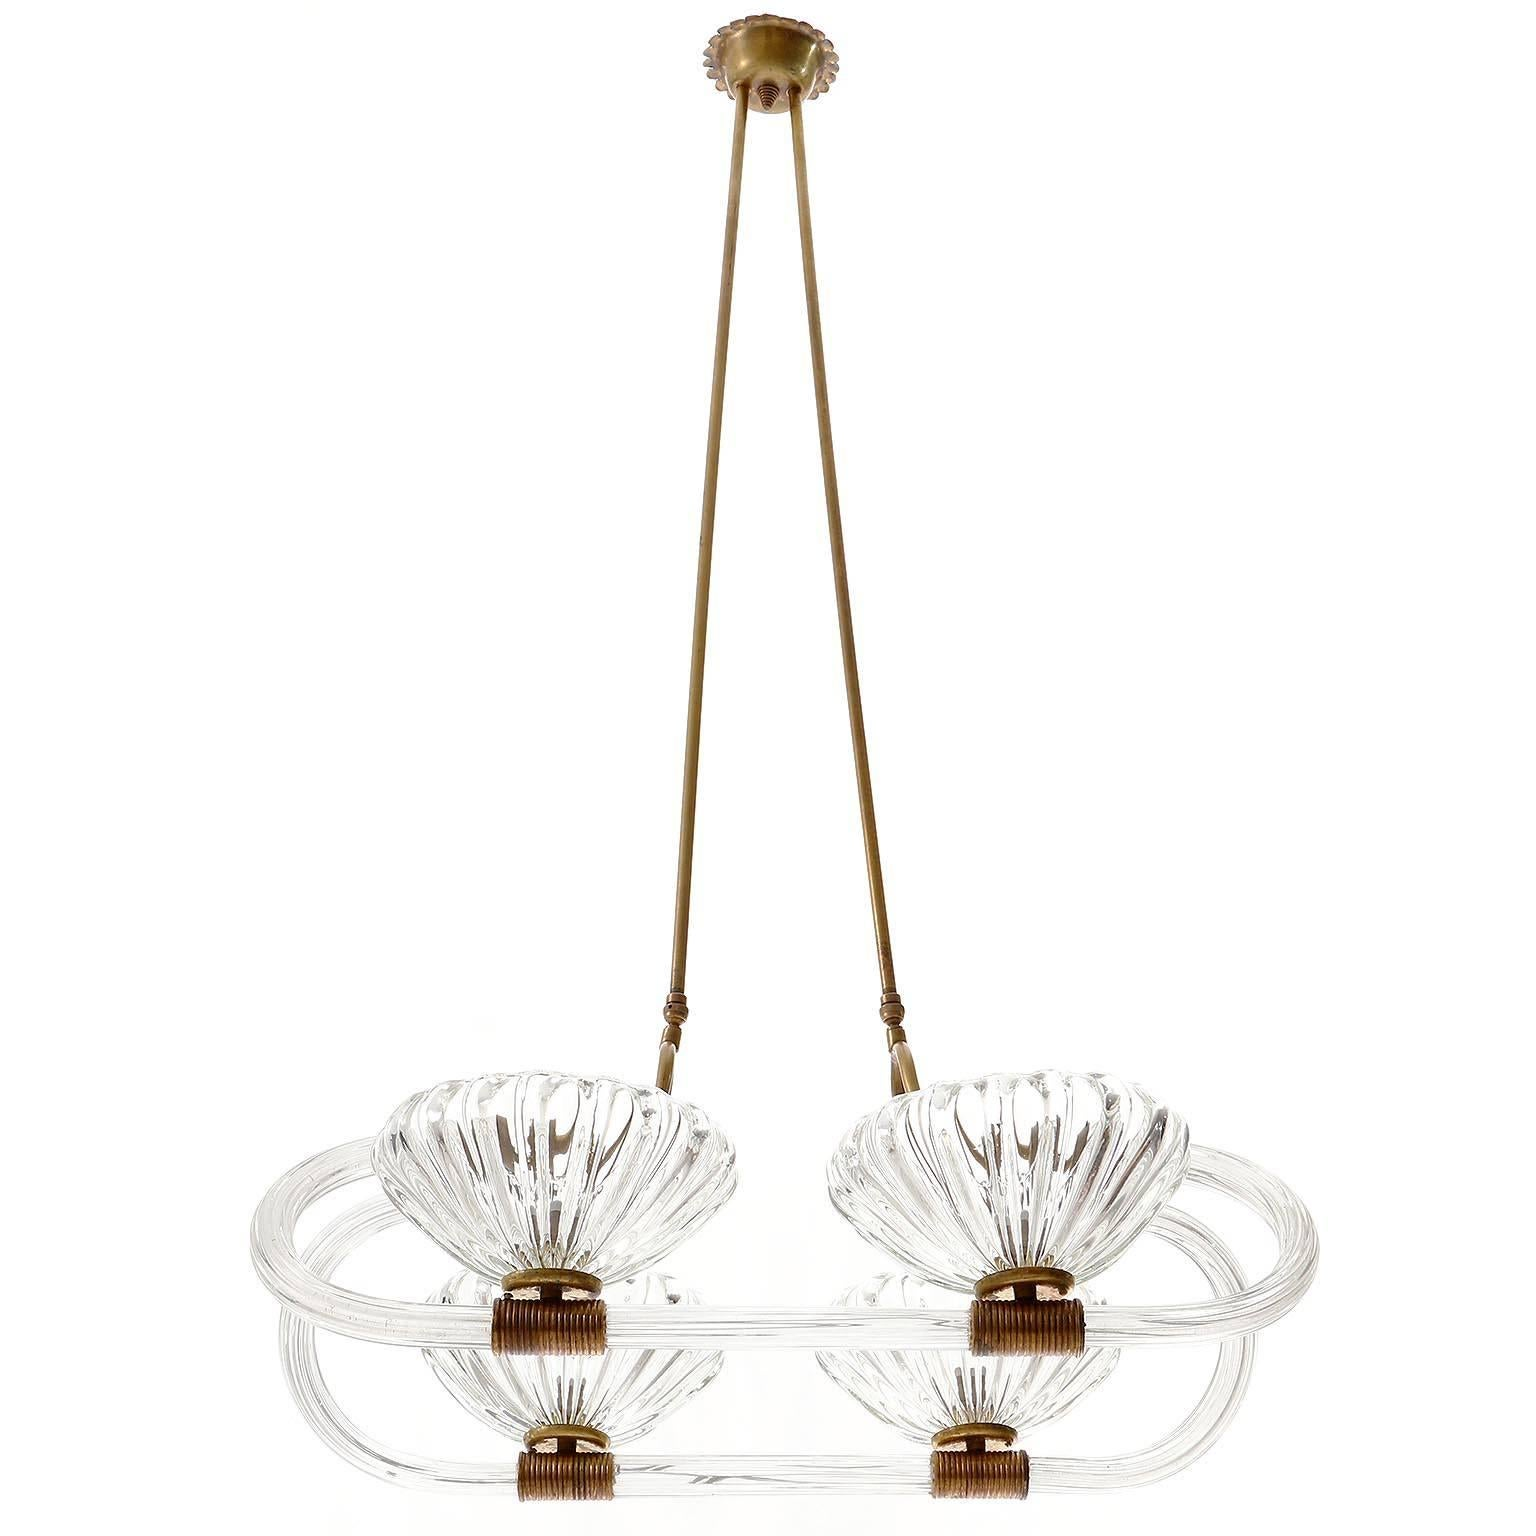 Barovier Chandelier, Glass and Brass, Italy, 1940s